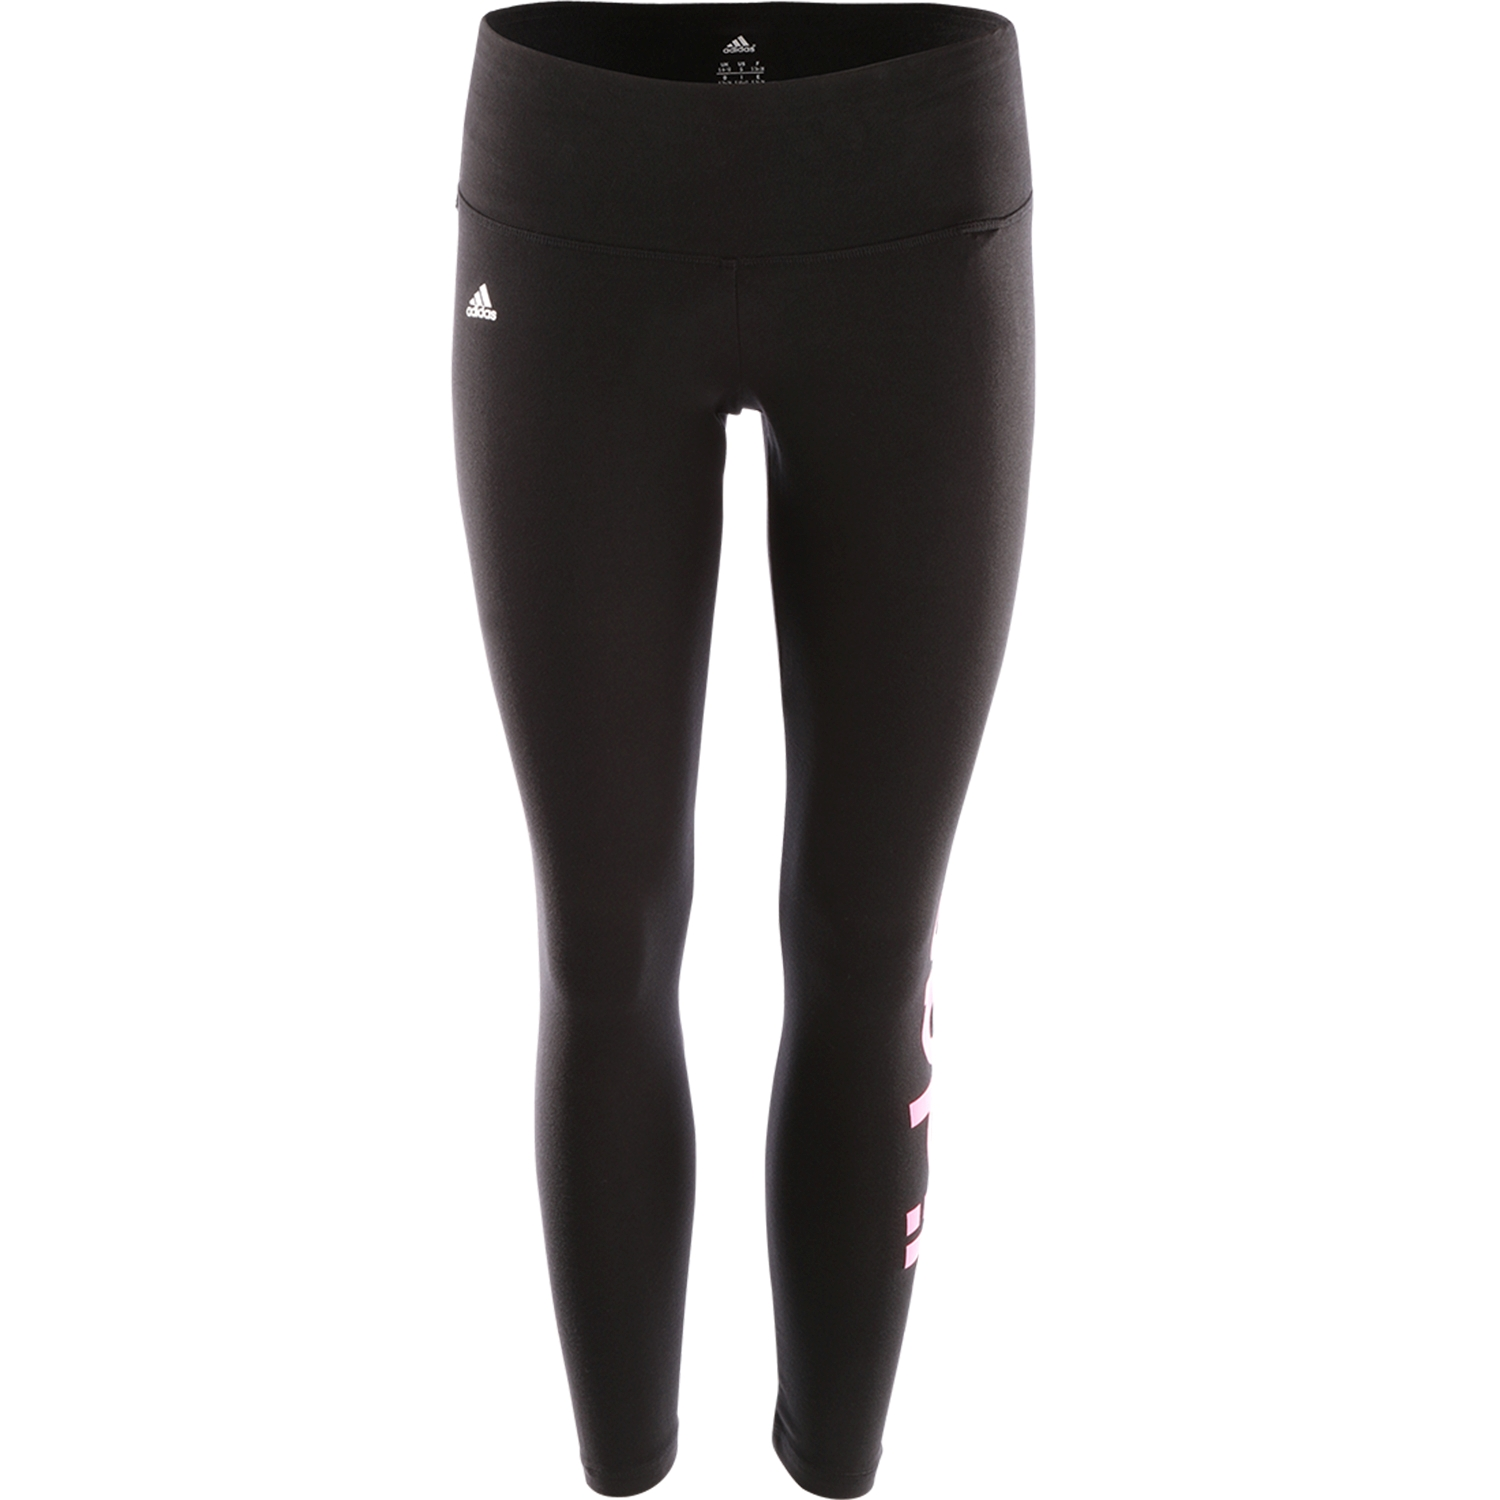 adidas_rl_tight_woman-27250456-8